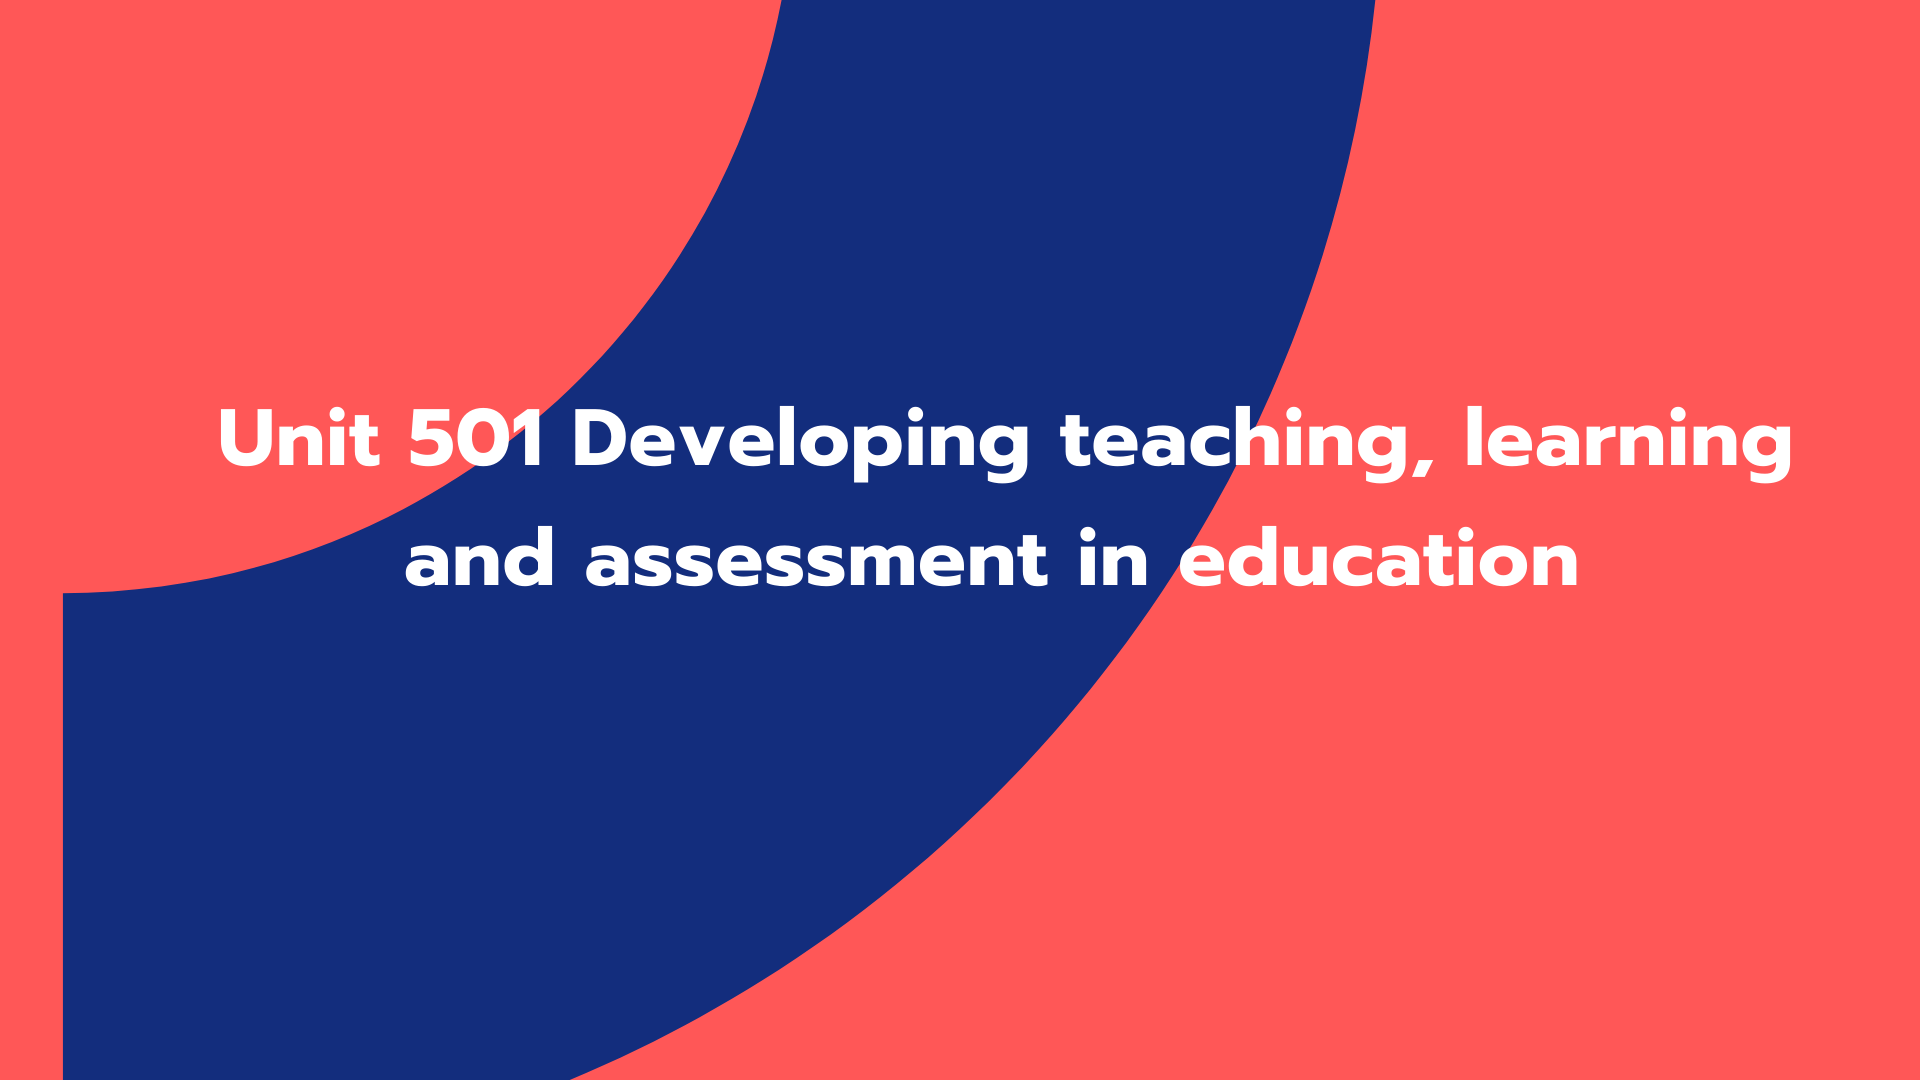 Unit 501 Developing teaching, learning and assessment in education